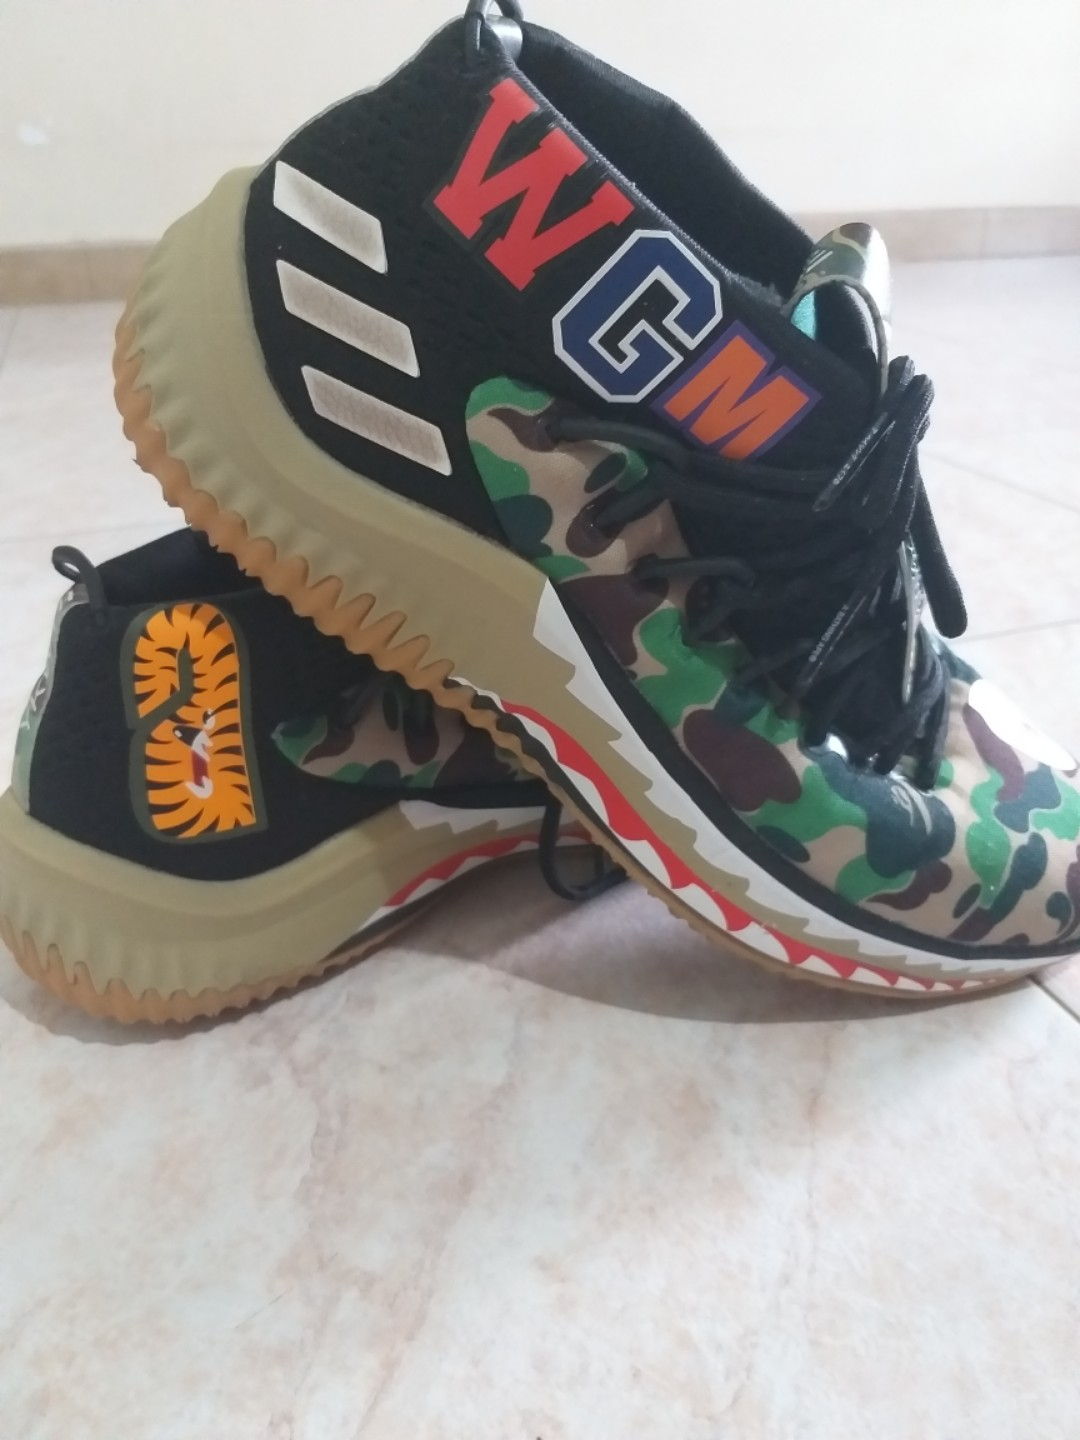 the best attitude f0672 1ba63 Sepatu Adidas x Bape Dame 4 green camo, Mens Fashion, Mens Footwear,  Sneakers on Carousell